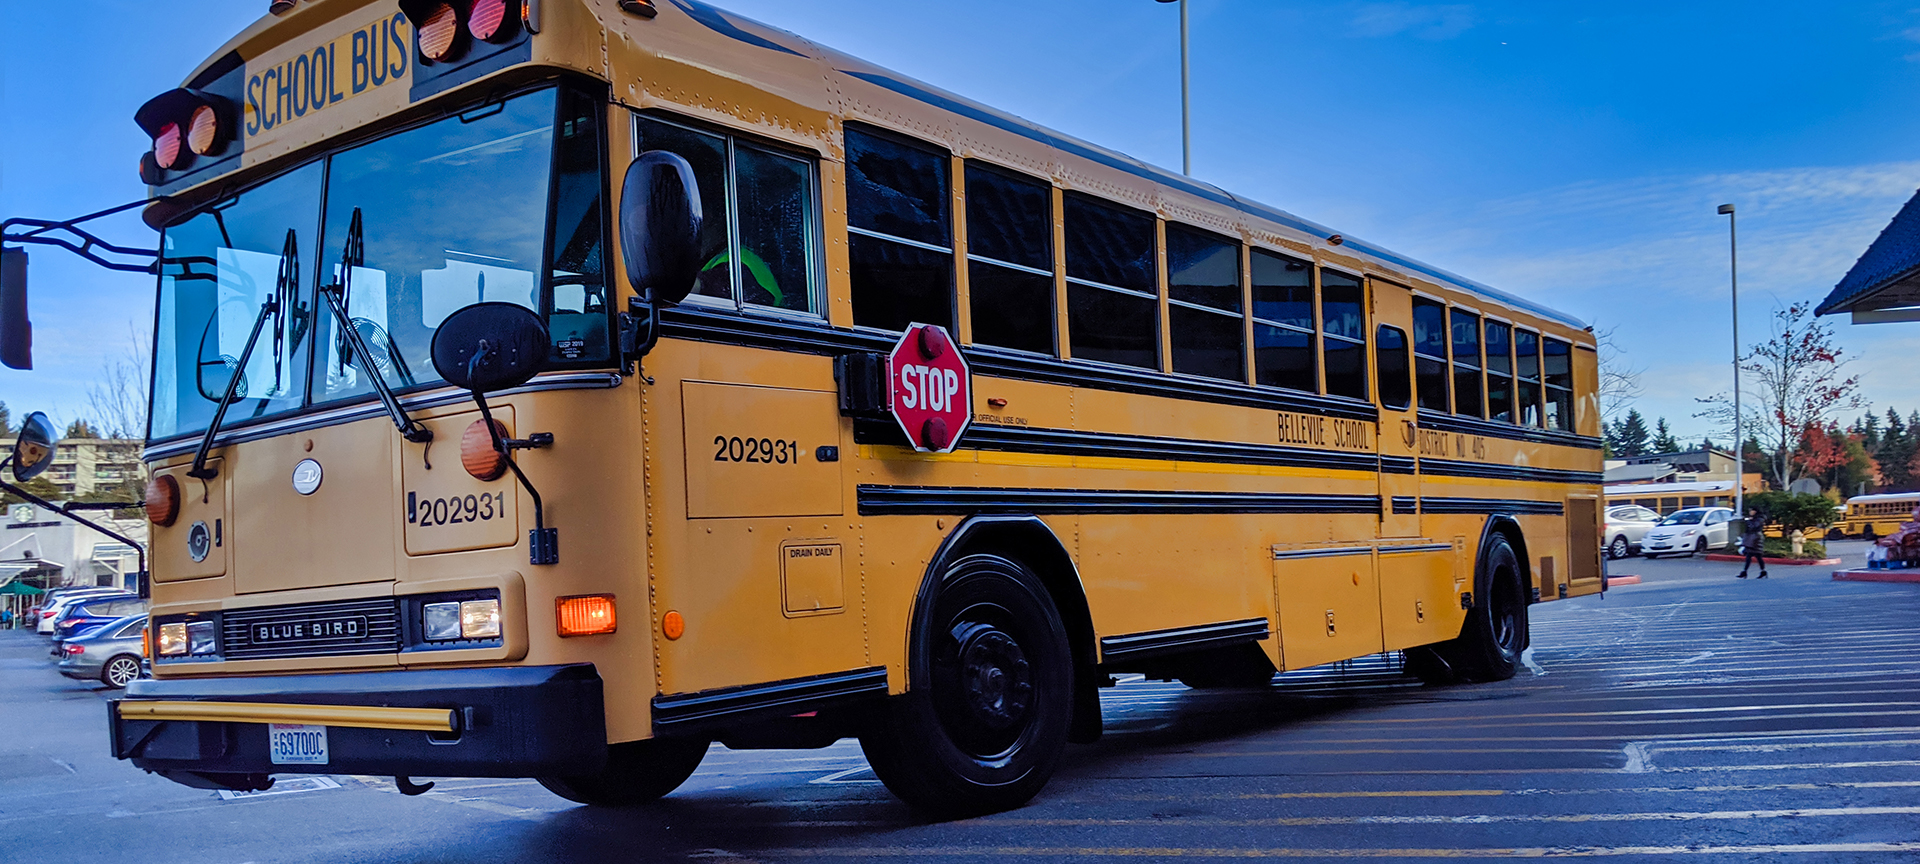 School buses frequently stop at the side of the road to drop children off and when preparing to do so they turn on yellow flashing lights as a warning that they are intending to stop. The lights change to flashing red and a red hexagonal STOP sign flips out from the side of the bus. At this point no vehicle is permitted to pass or go alongside the bus. All traffic must come to a complete standstill while the children alight (and while the sign and flashing red lights are in operation).